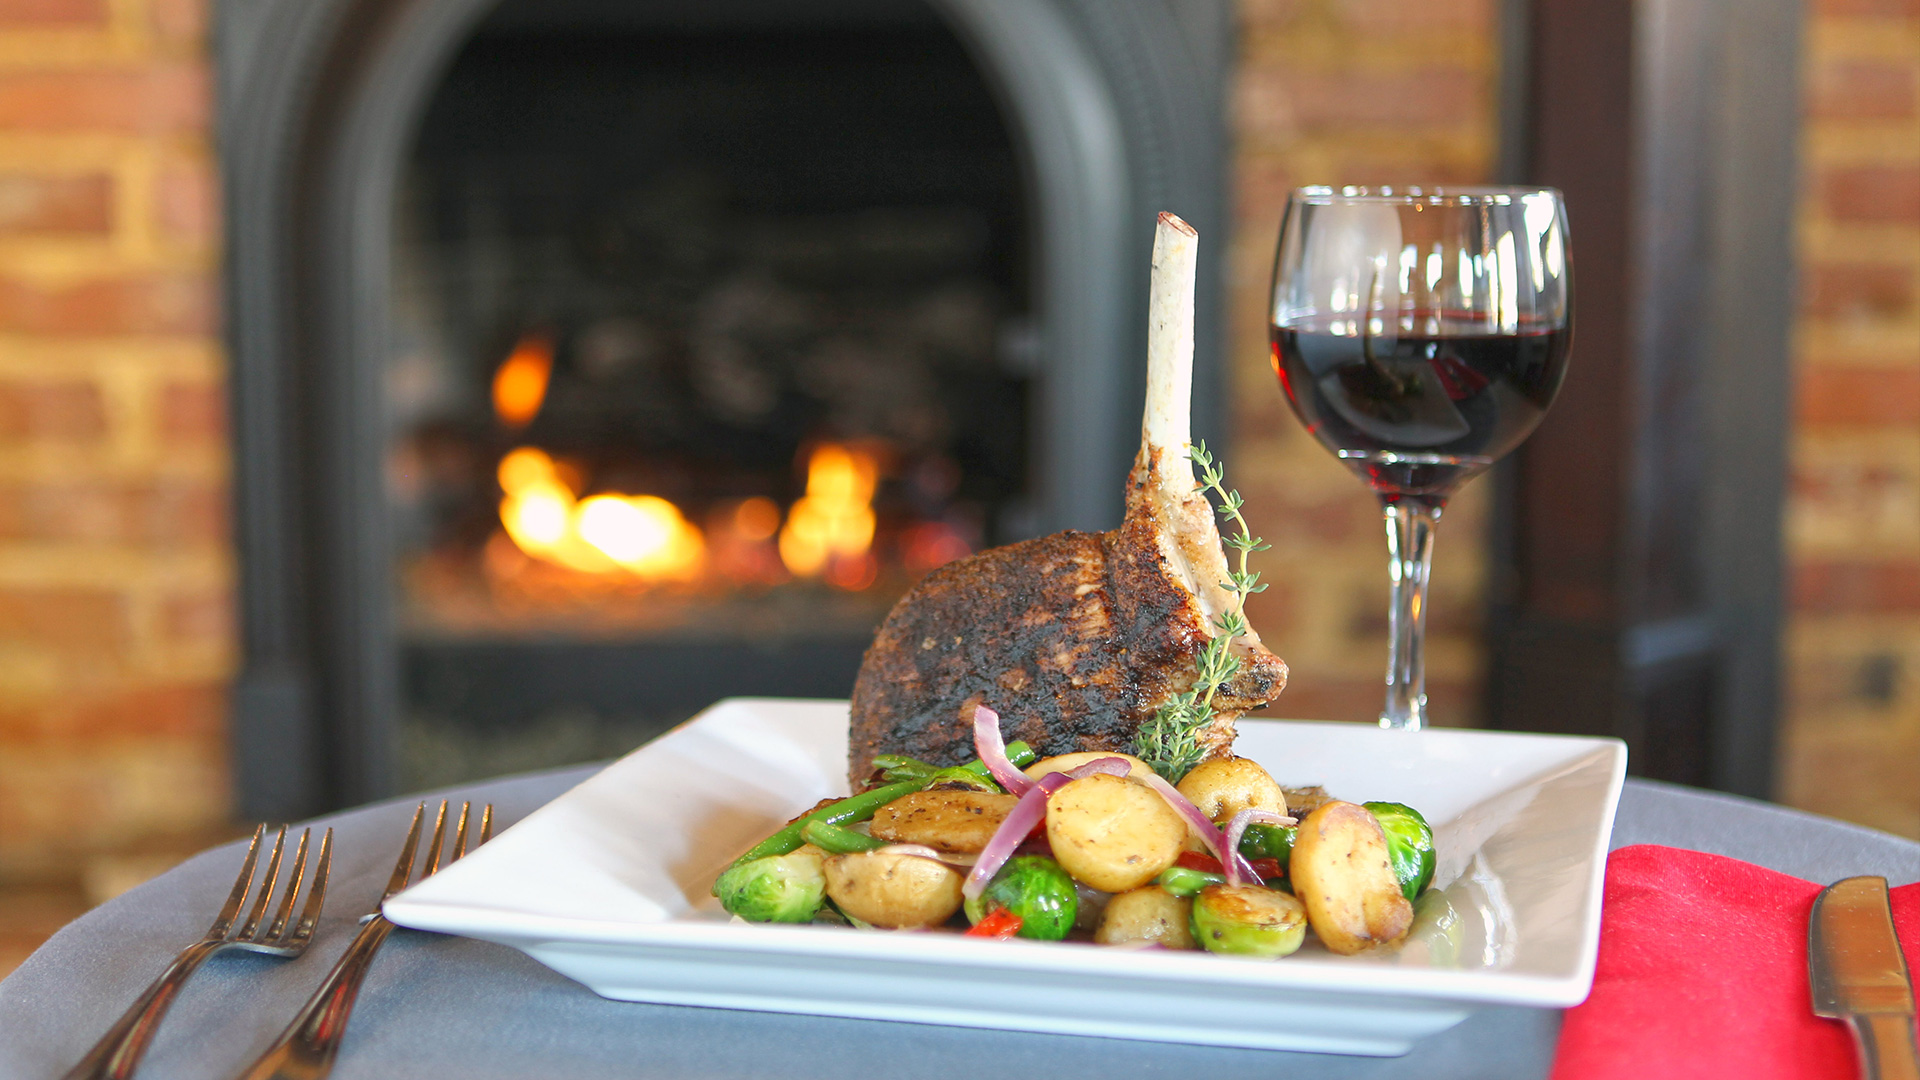 Food by Fireplace